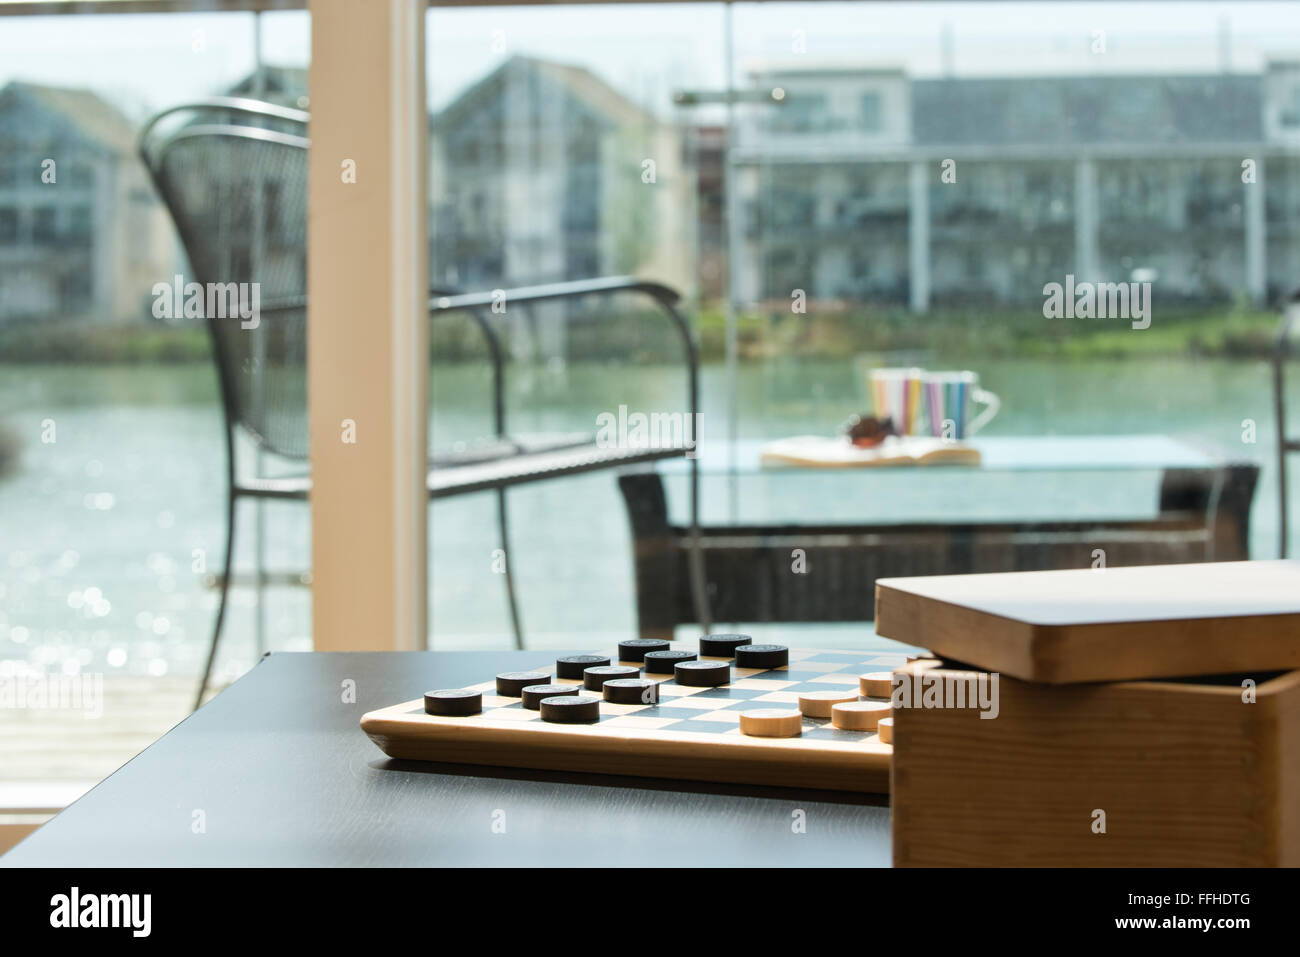 A checkers board, set, awaiting opponents to start a game in a holiday home overlooking water Stock Photo